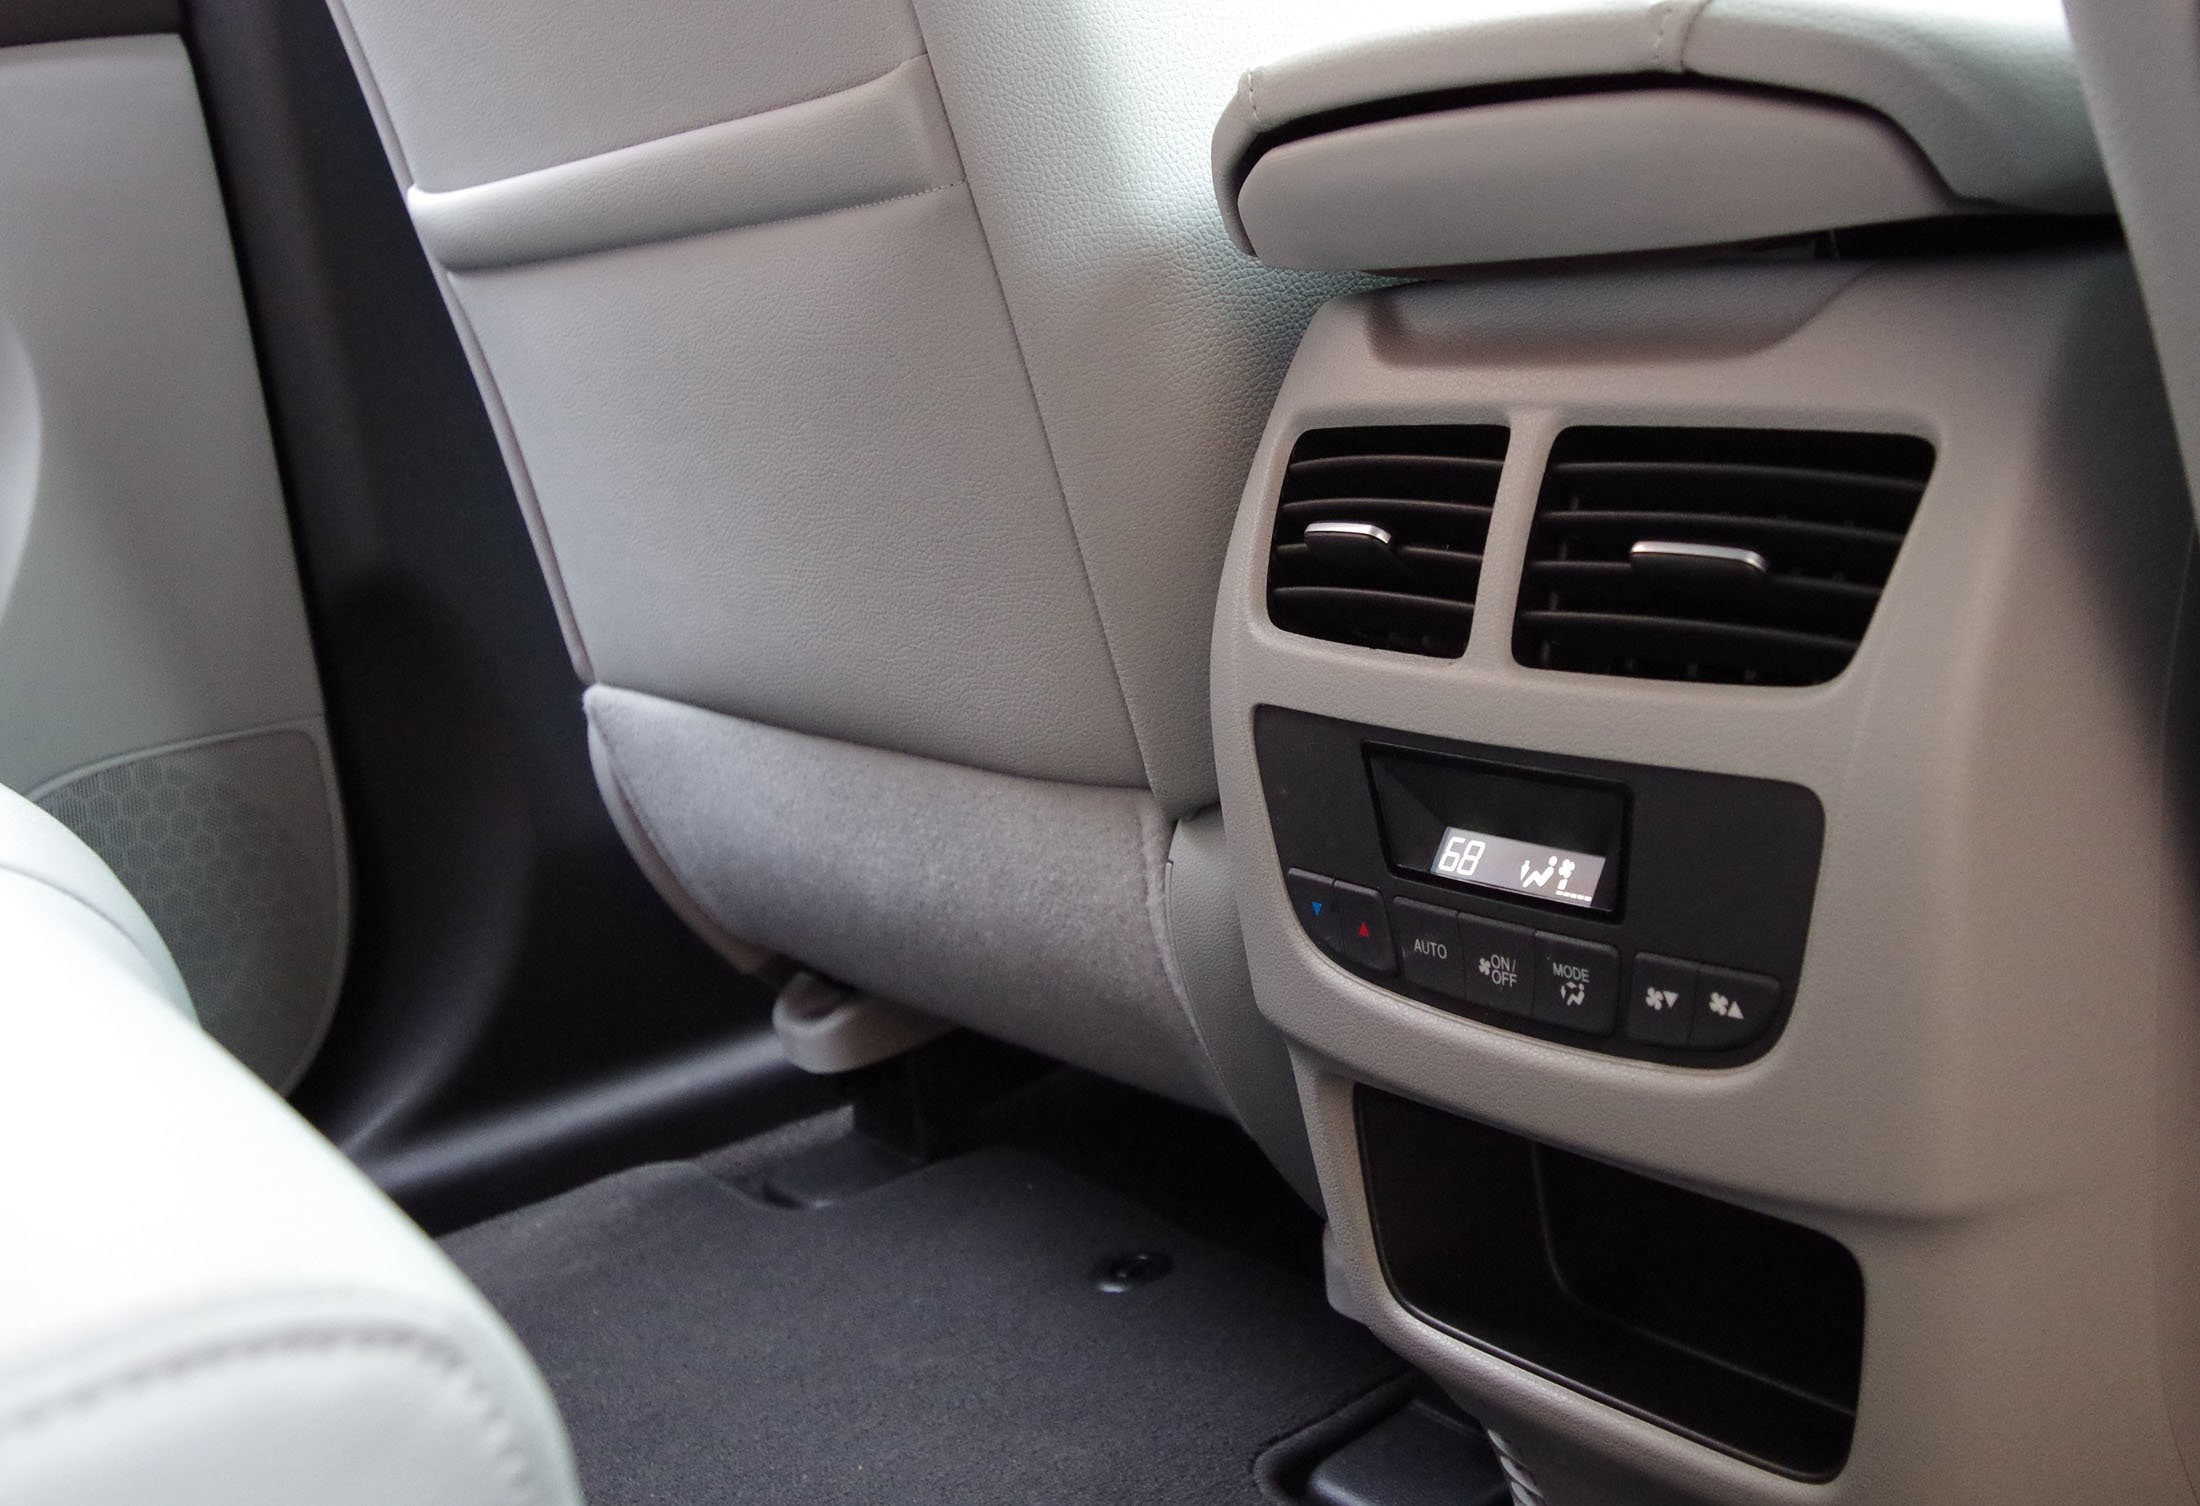 Here's the climate control for rear passengers on the 2014 Acura MDX.